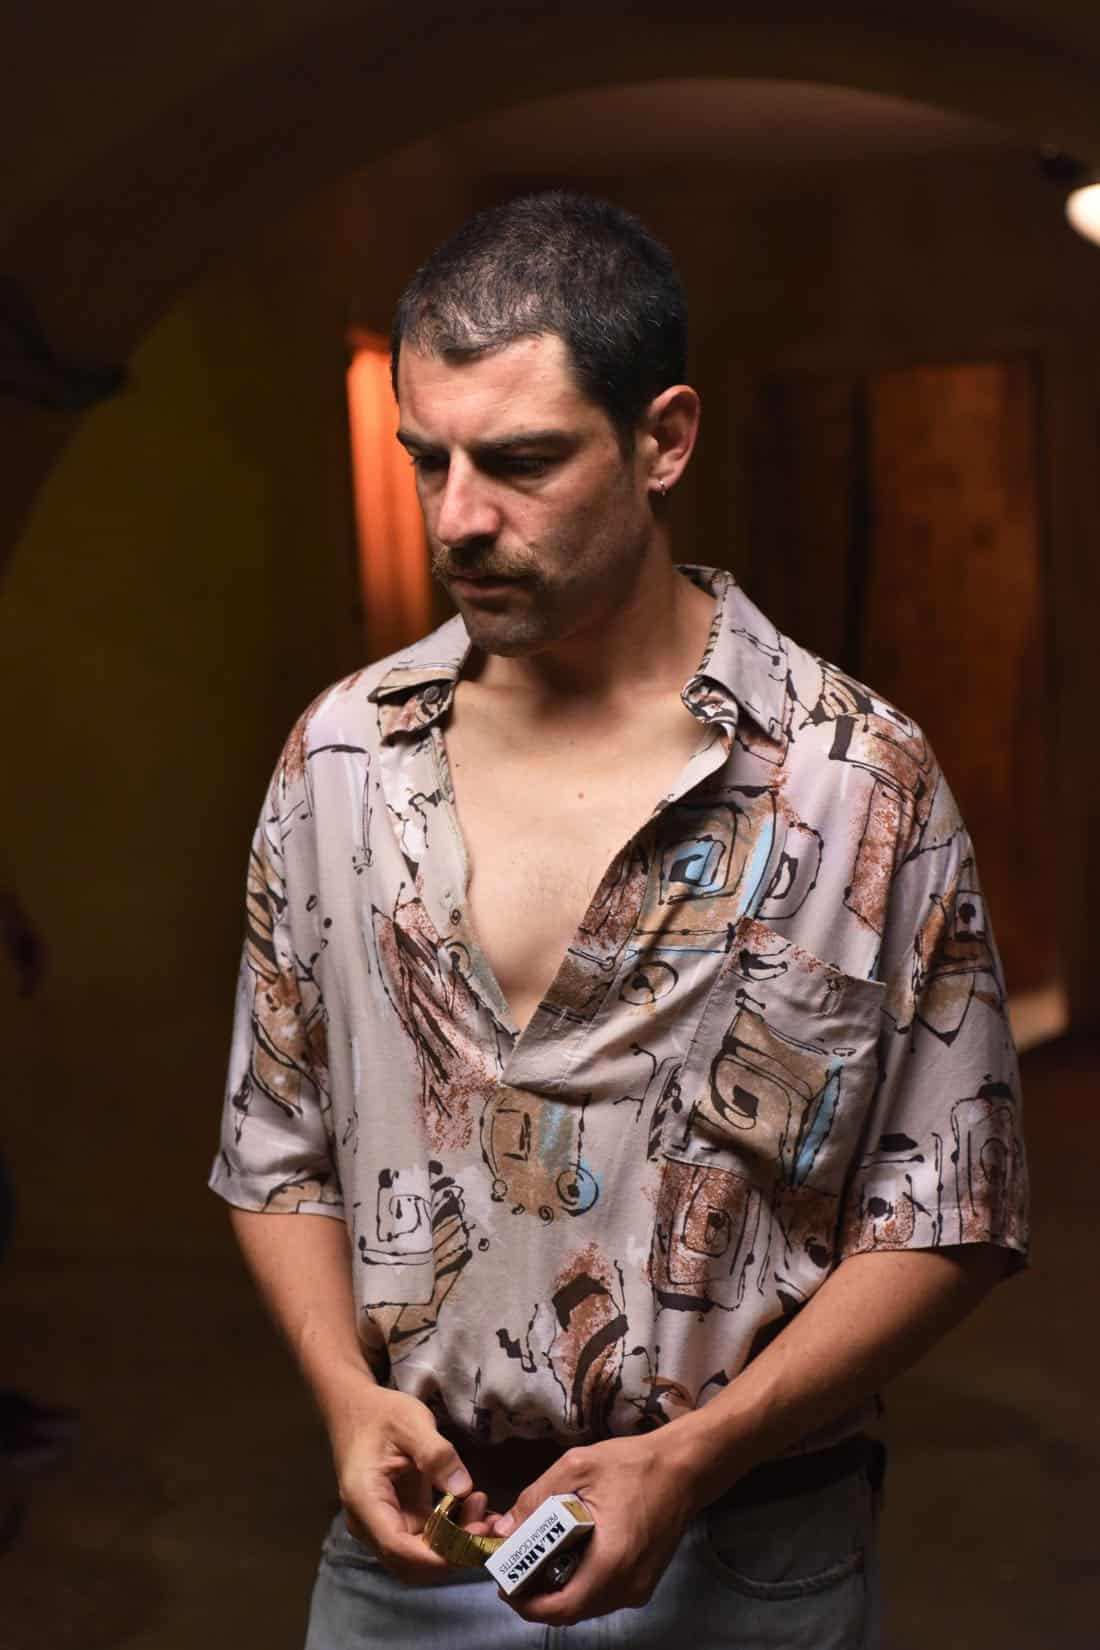 """THE ASSASSINATION OF GIANNI VERSACE: AMERICAN CRIME STORY """"Manhunt"""" Episode 2 (Airs Wednesday. January 24, 10:00 p.m. e/p) -- Pictured: Max Greenfield as Ronnie. CR: Ray Mickshaw/FX"""